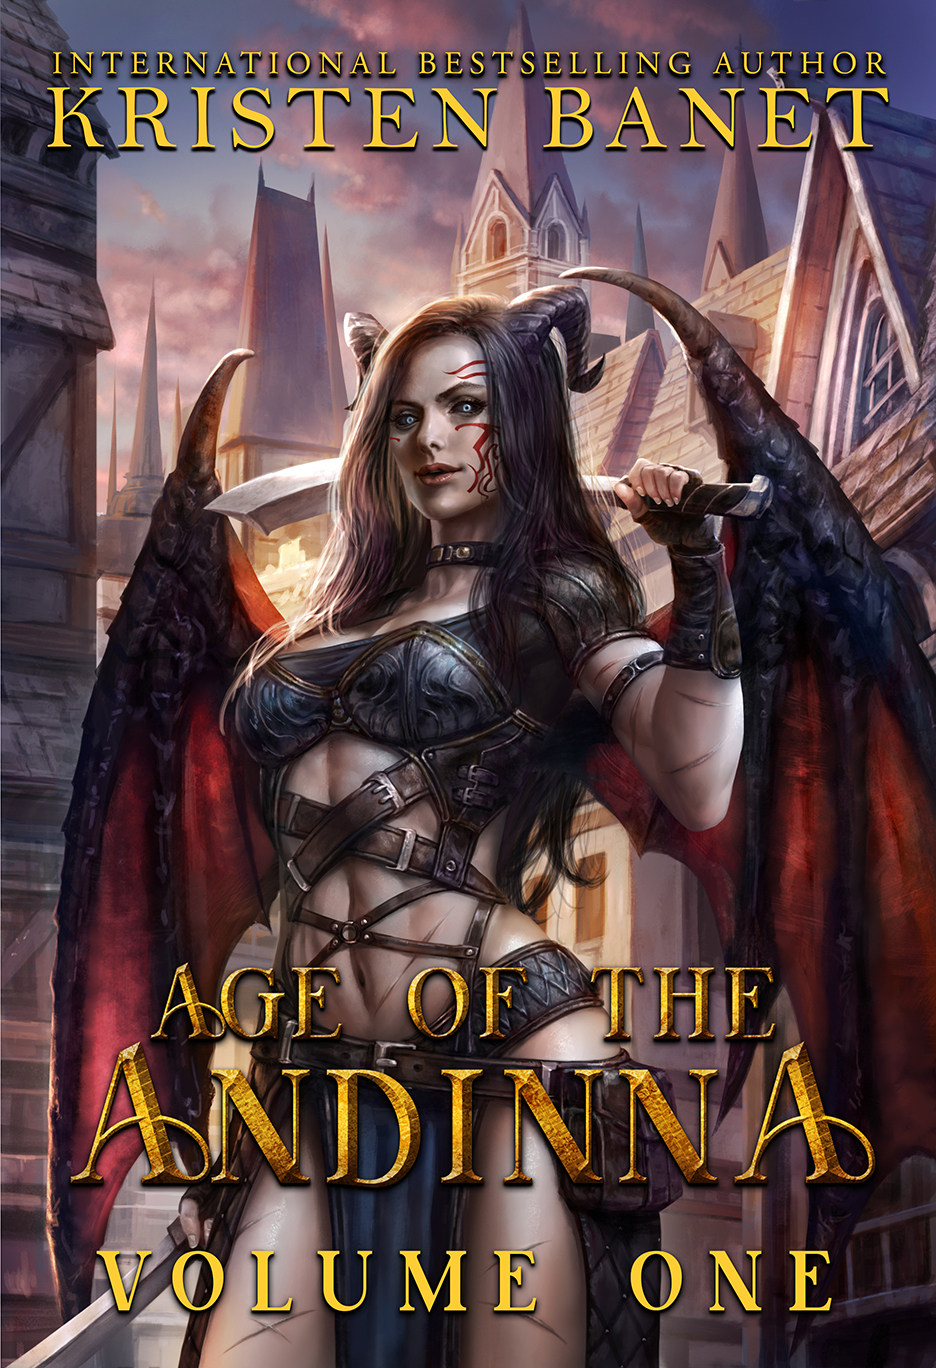 Age of the Andinna Volume One by Kristen Banet